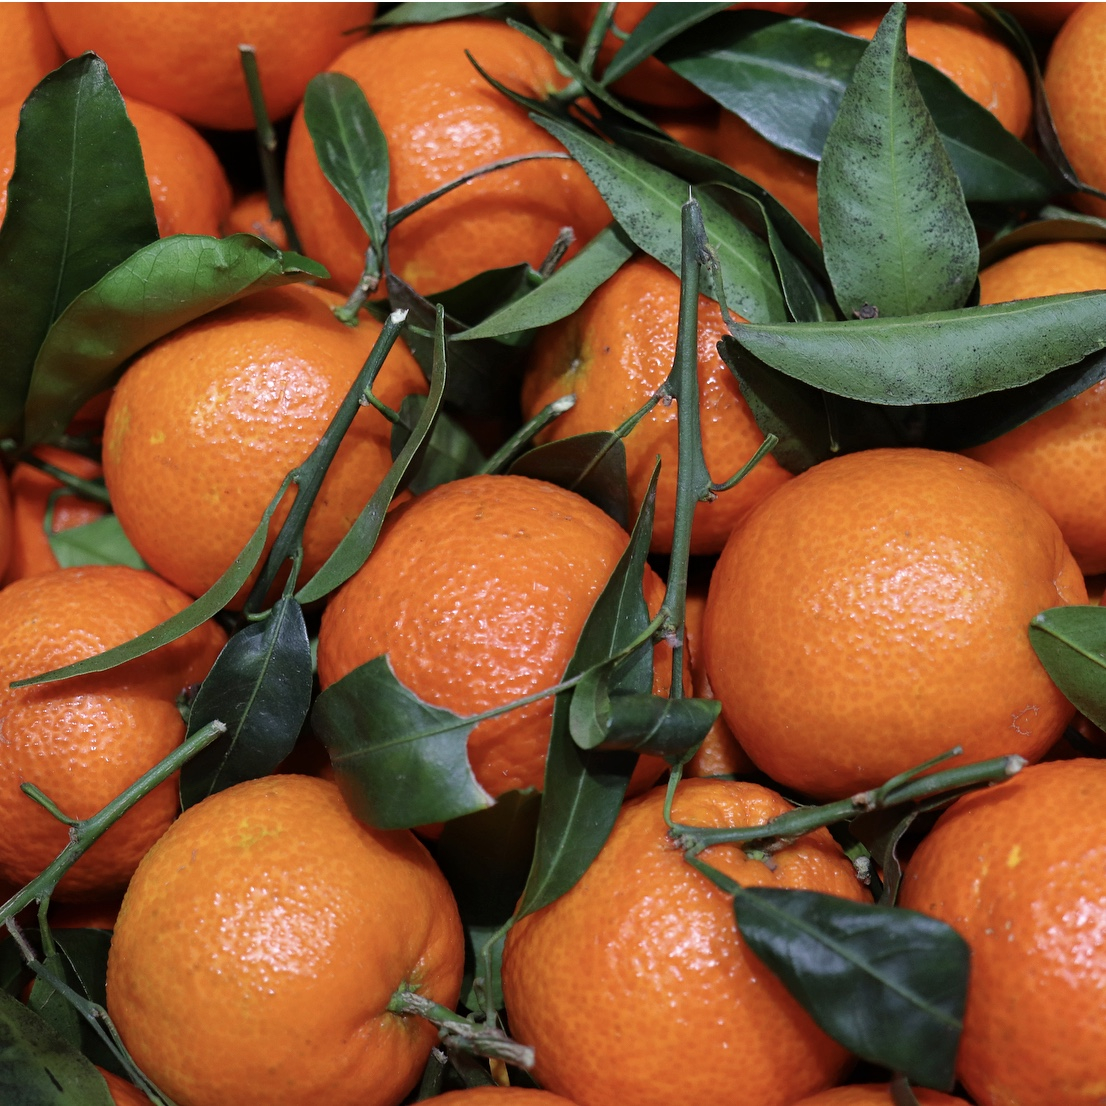 A true seasonal delight! These leafy clementines are absolutely bursting with sweet/acidic juiciness!